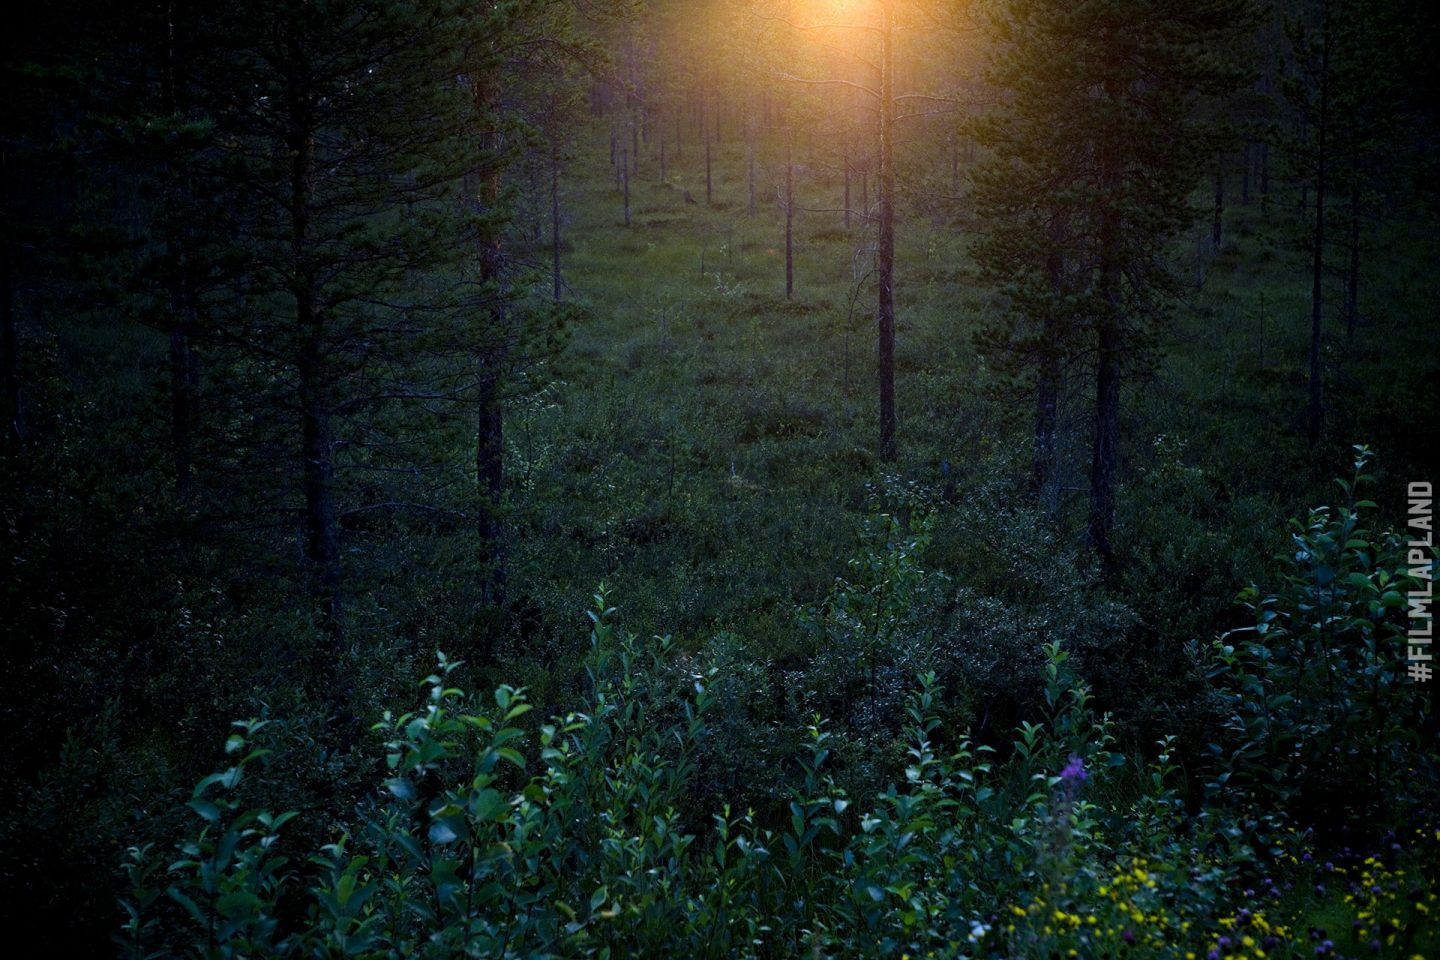 Midnight Sun over Rovaniemi forest in Finland